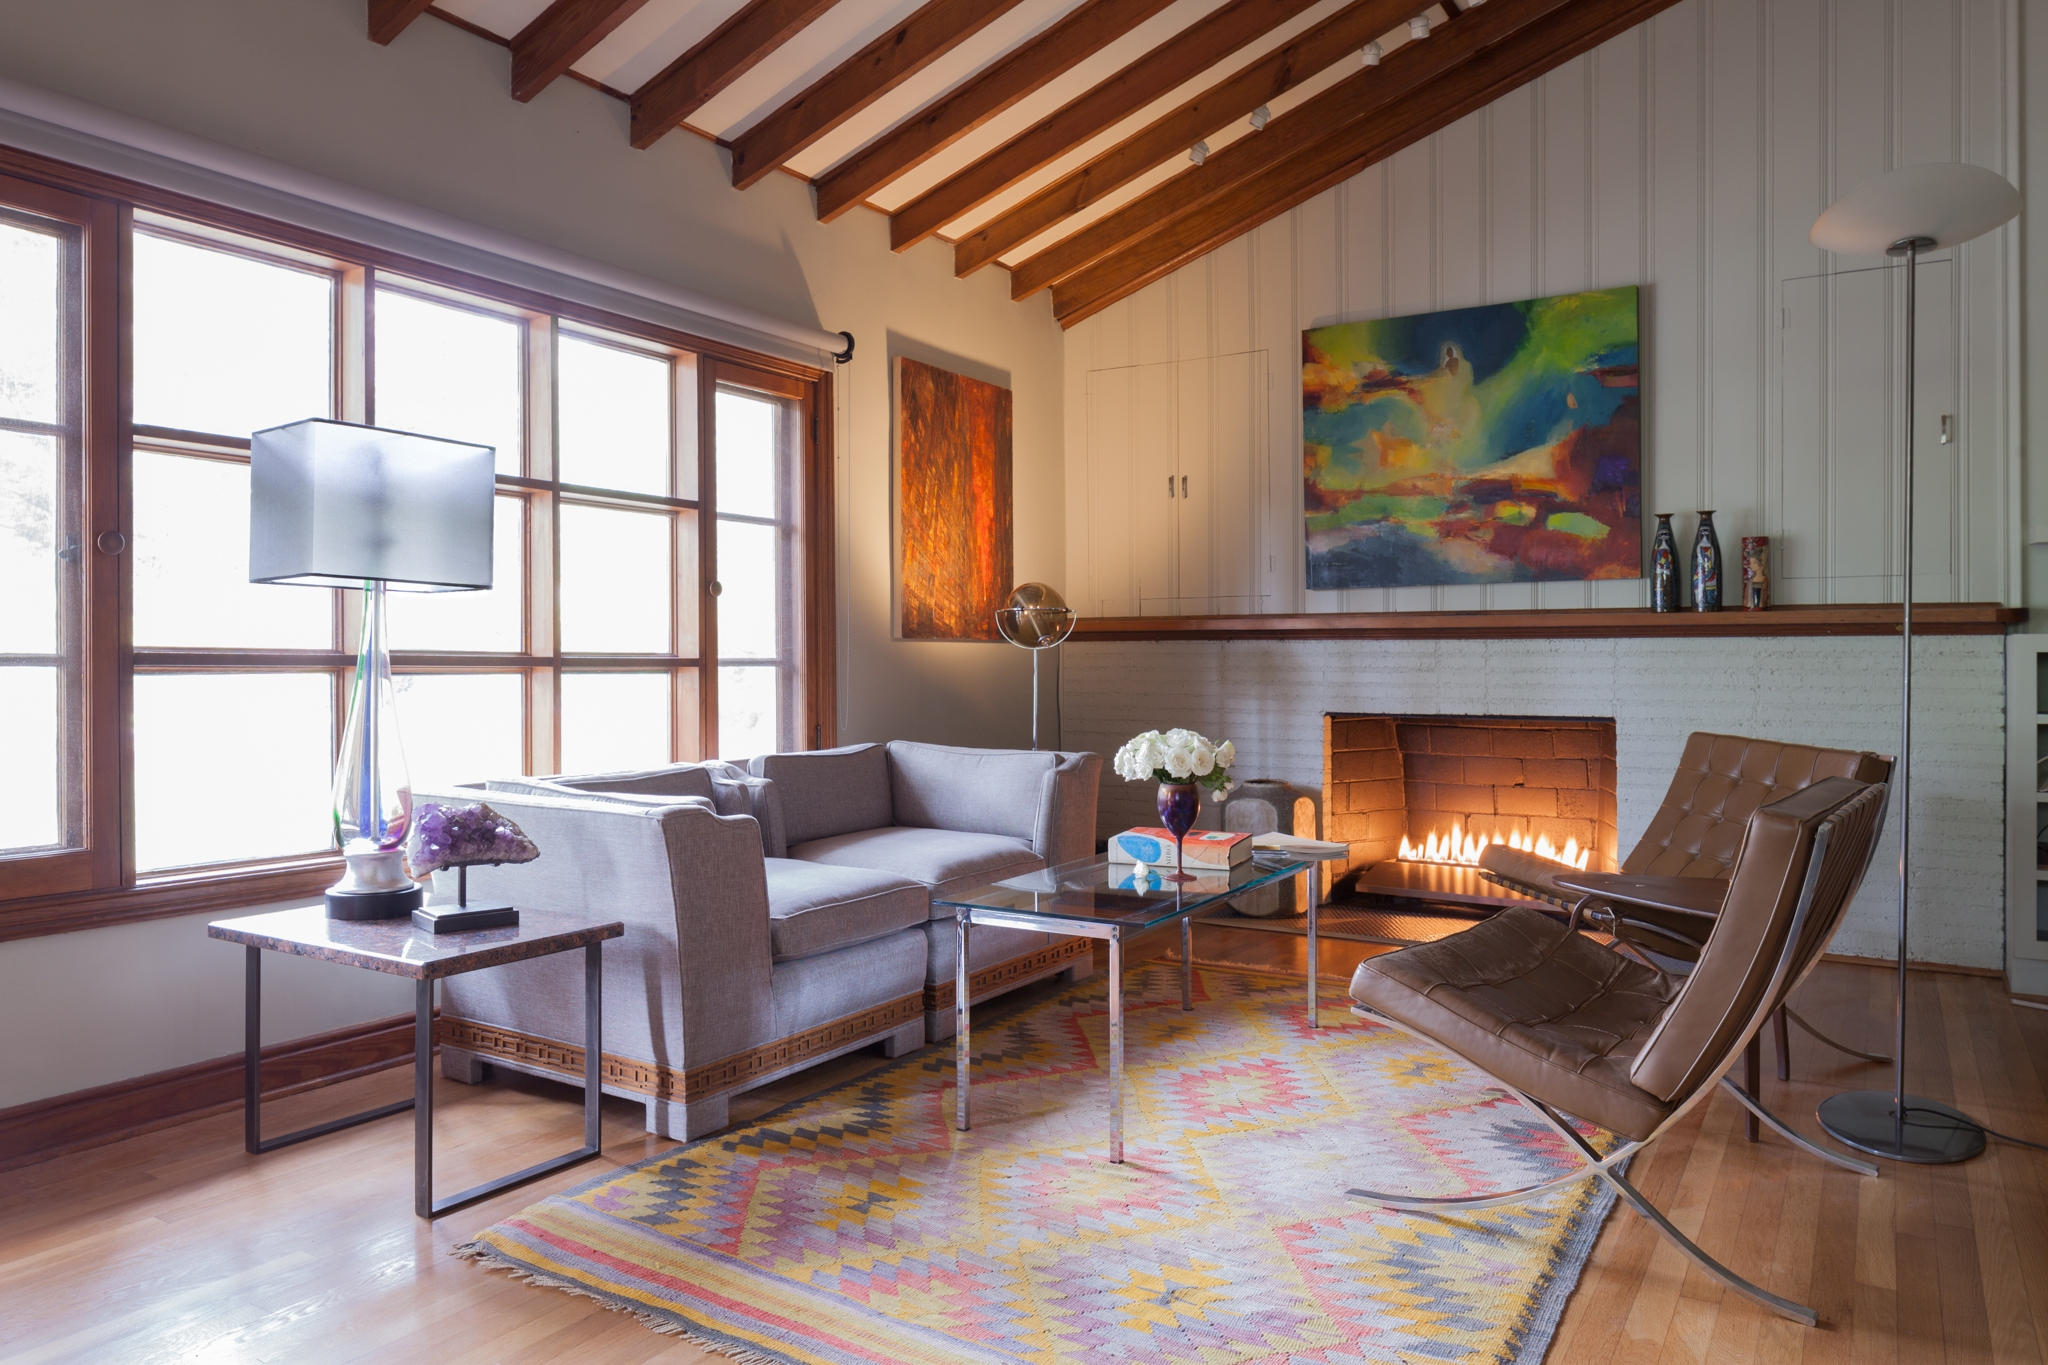 Client's childhood home transformed by mid-century furniture